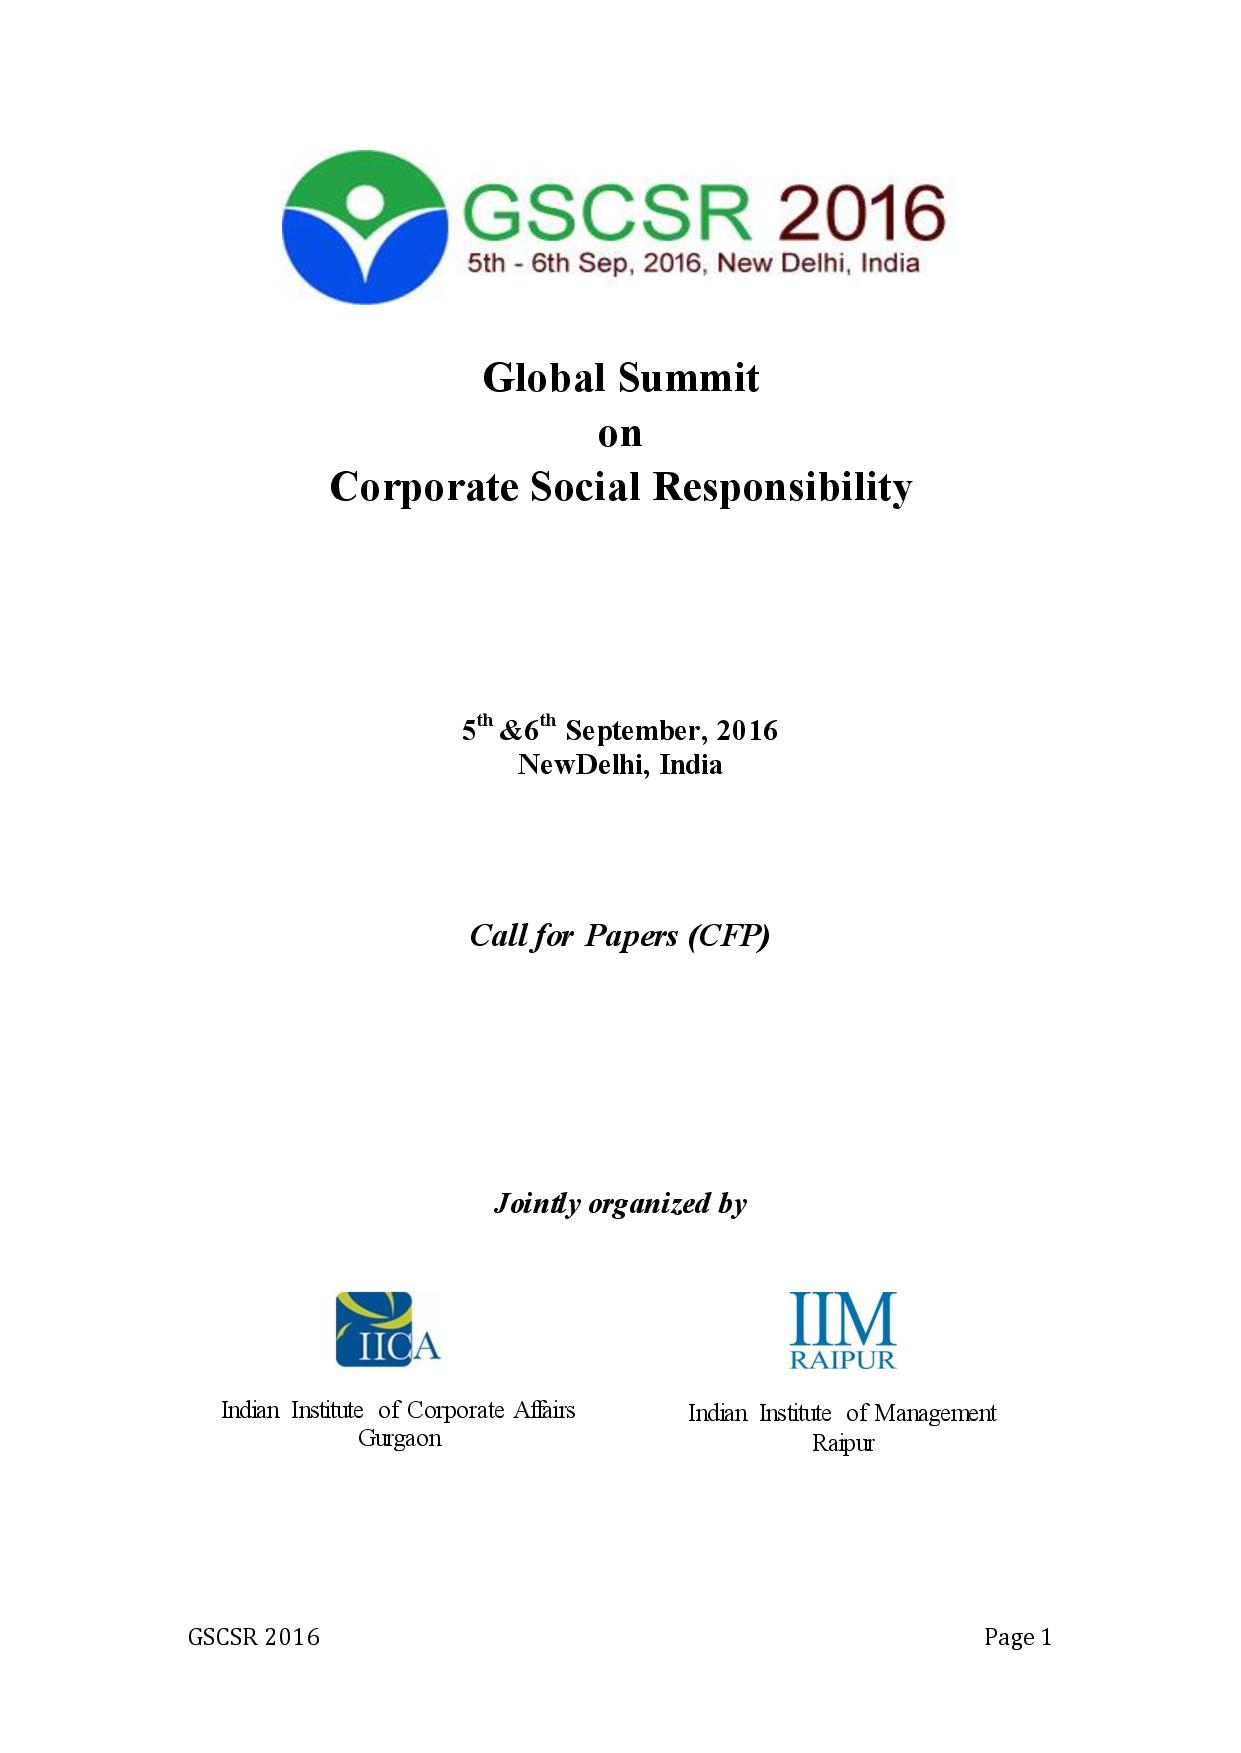 Call for Papers: Global Summit on Corporate Social Responsibility